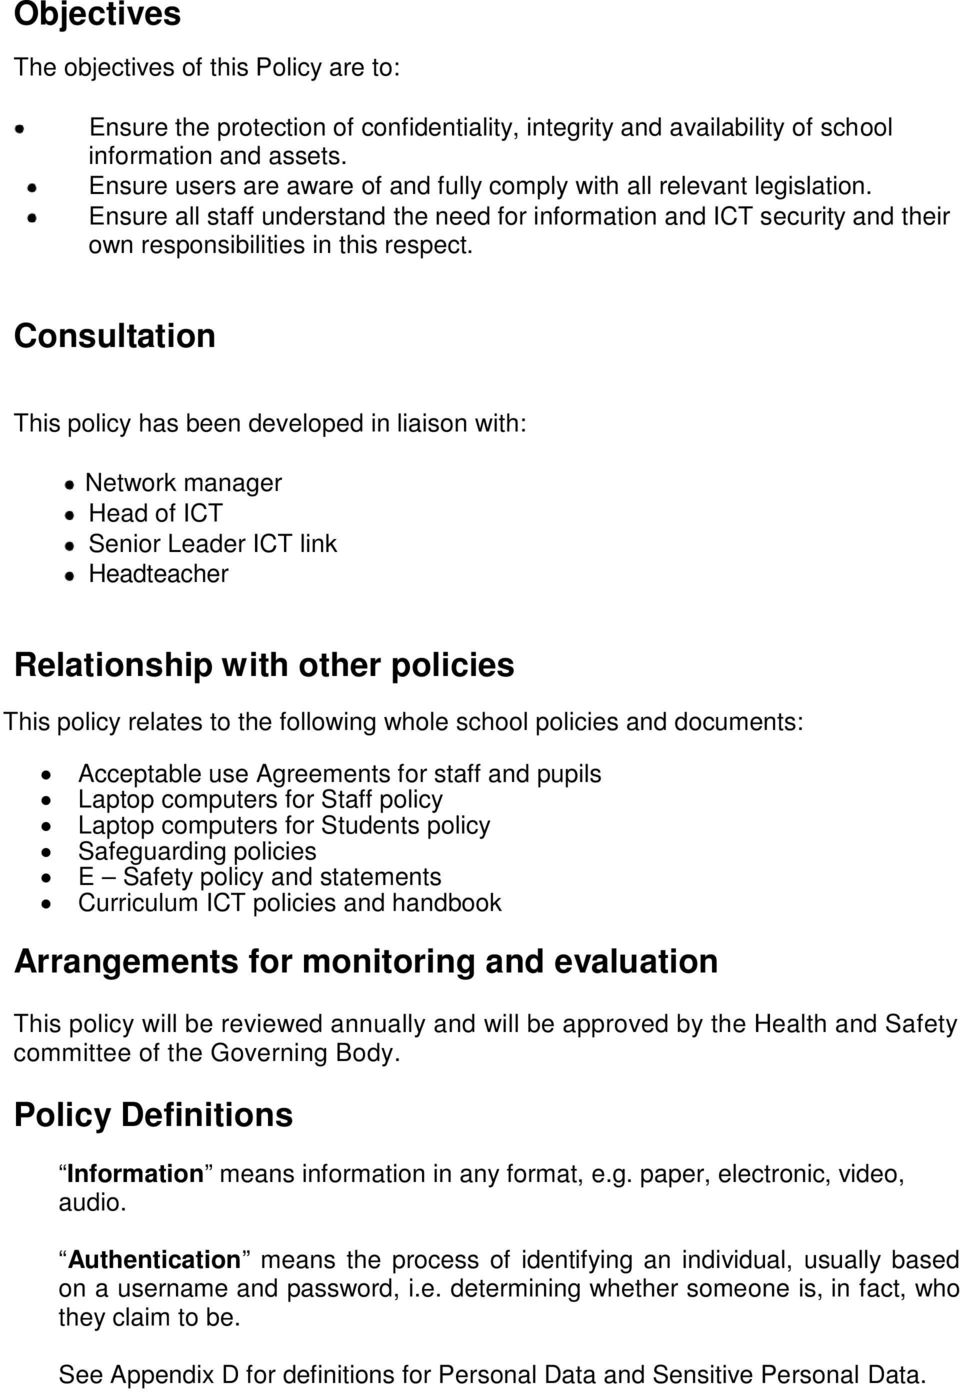 Consultation This policy has been developed in liaison with: Network manager Head of ICT Senior Leader ICT link Headteacher Relationship with other policies This policy relates to the following whole